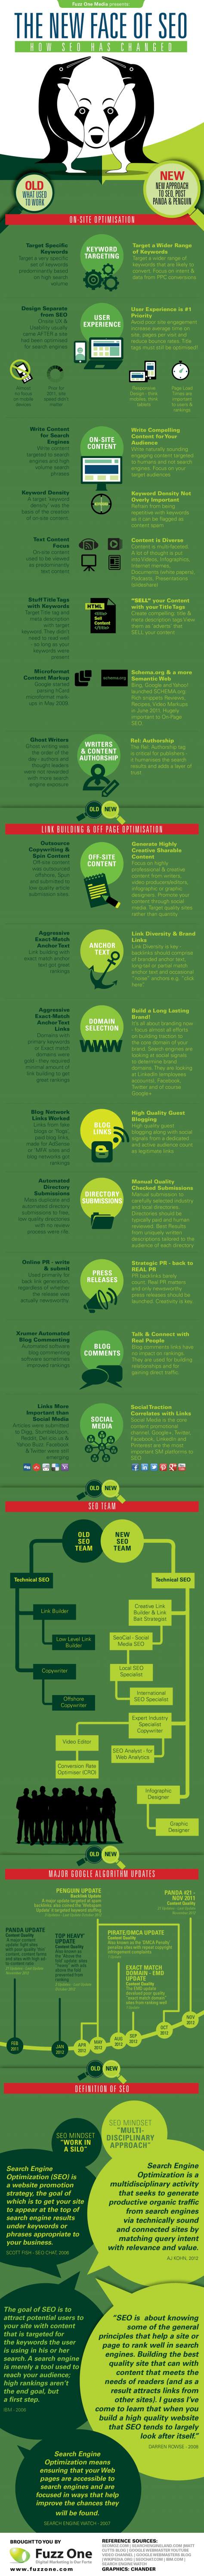 [INFOGRAPHIC] - The New Face of SEO - How SEO has Changed in the Panda & Penguin Era